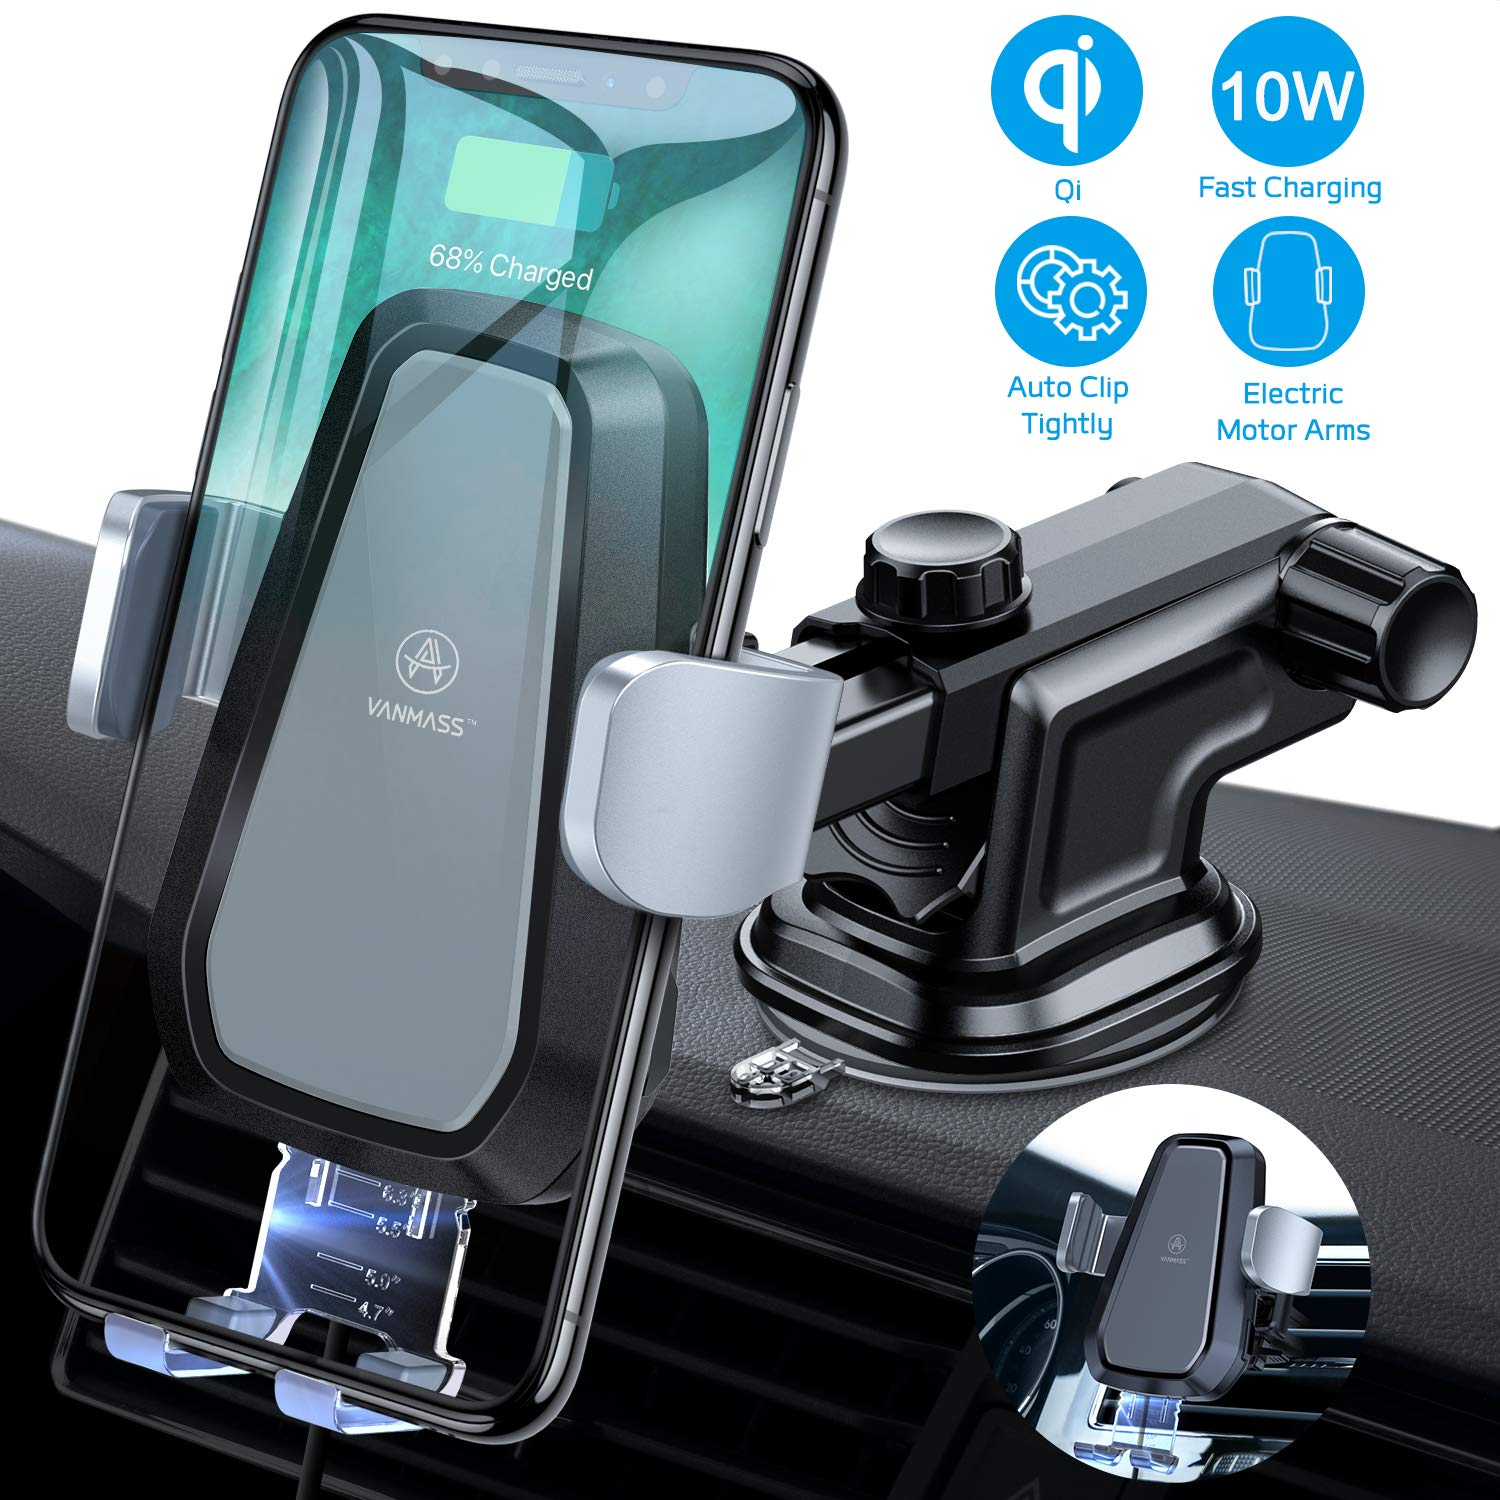 VANMASS Wireless Car Charger Mount, Automatic Clamping Qi 10W 7.5W Fast Charging 5W Car Mount, Windshield Dashboard Air Vent Phone Holder Compatible with iPhone Xs Max XR 8, Samsung S10 S9 S8 Note 9 by VANMASS